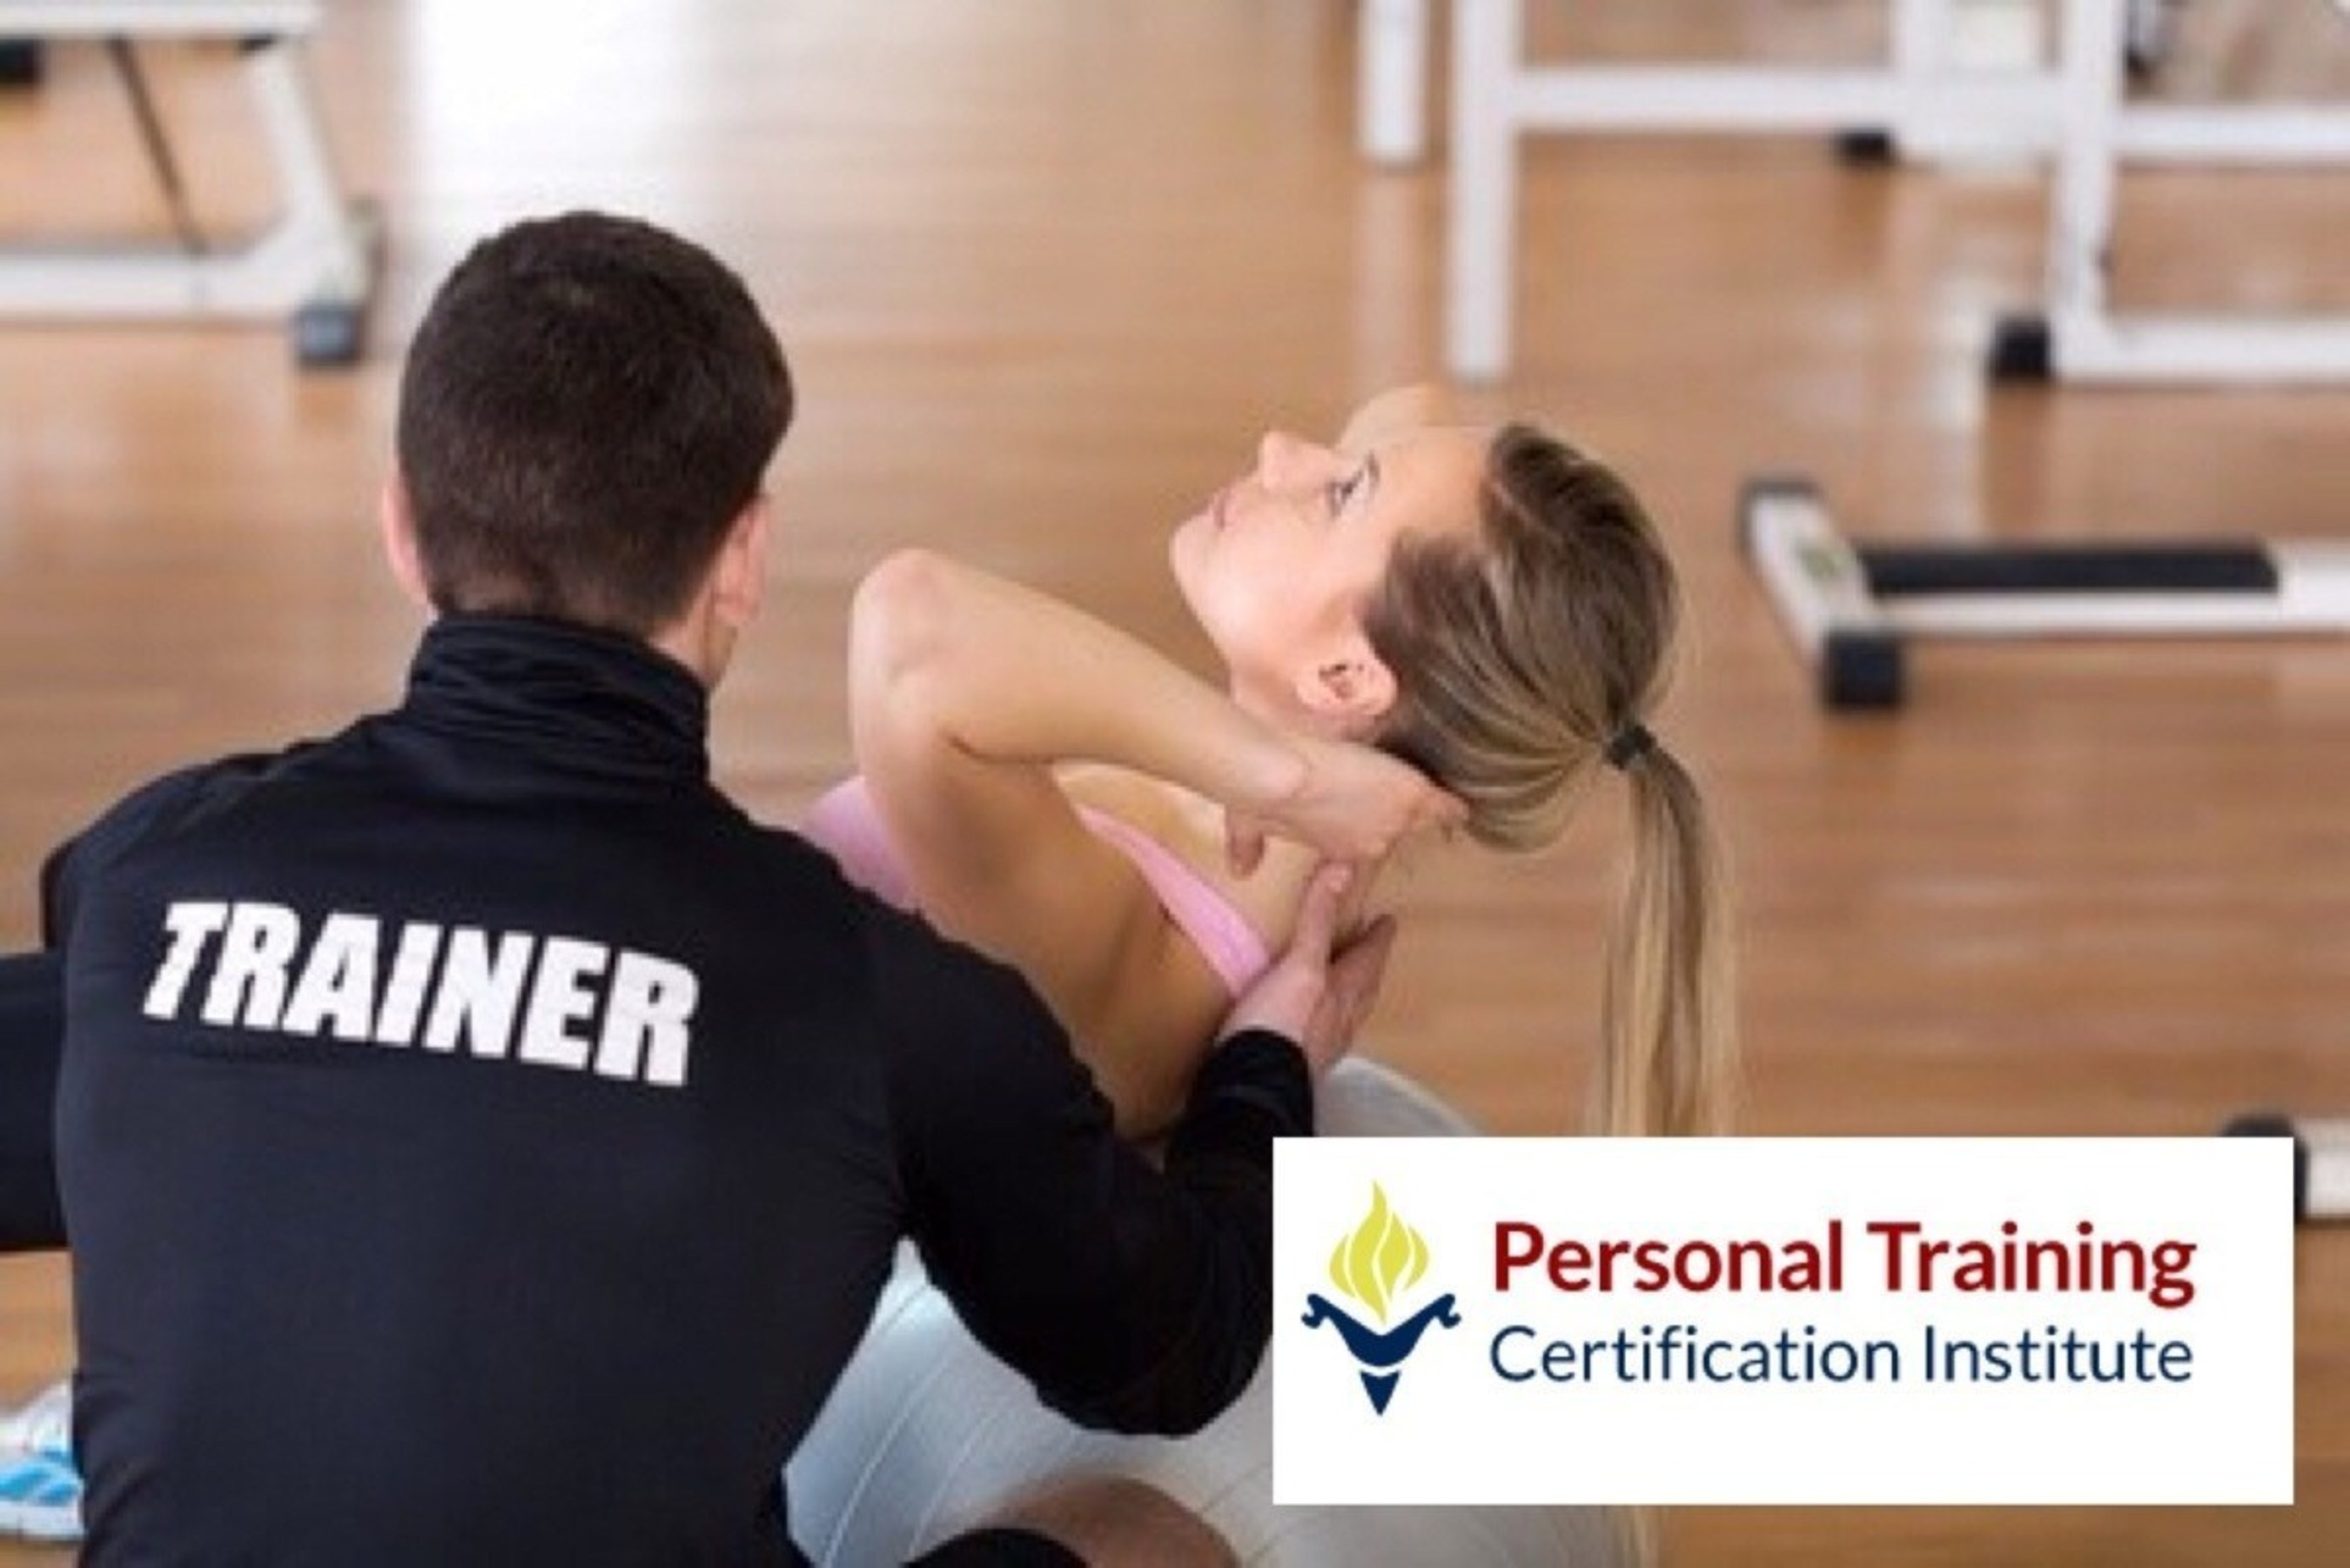 Personal Training Certification Institute Launches Website And New